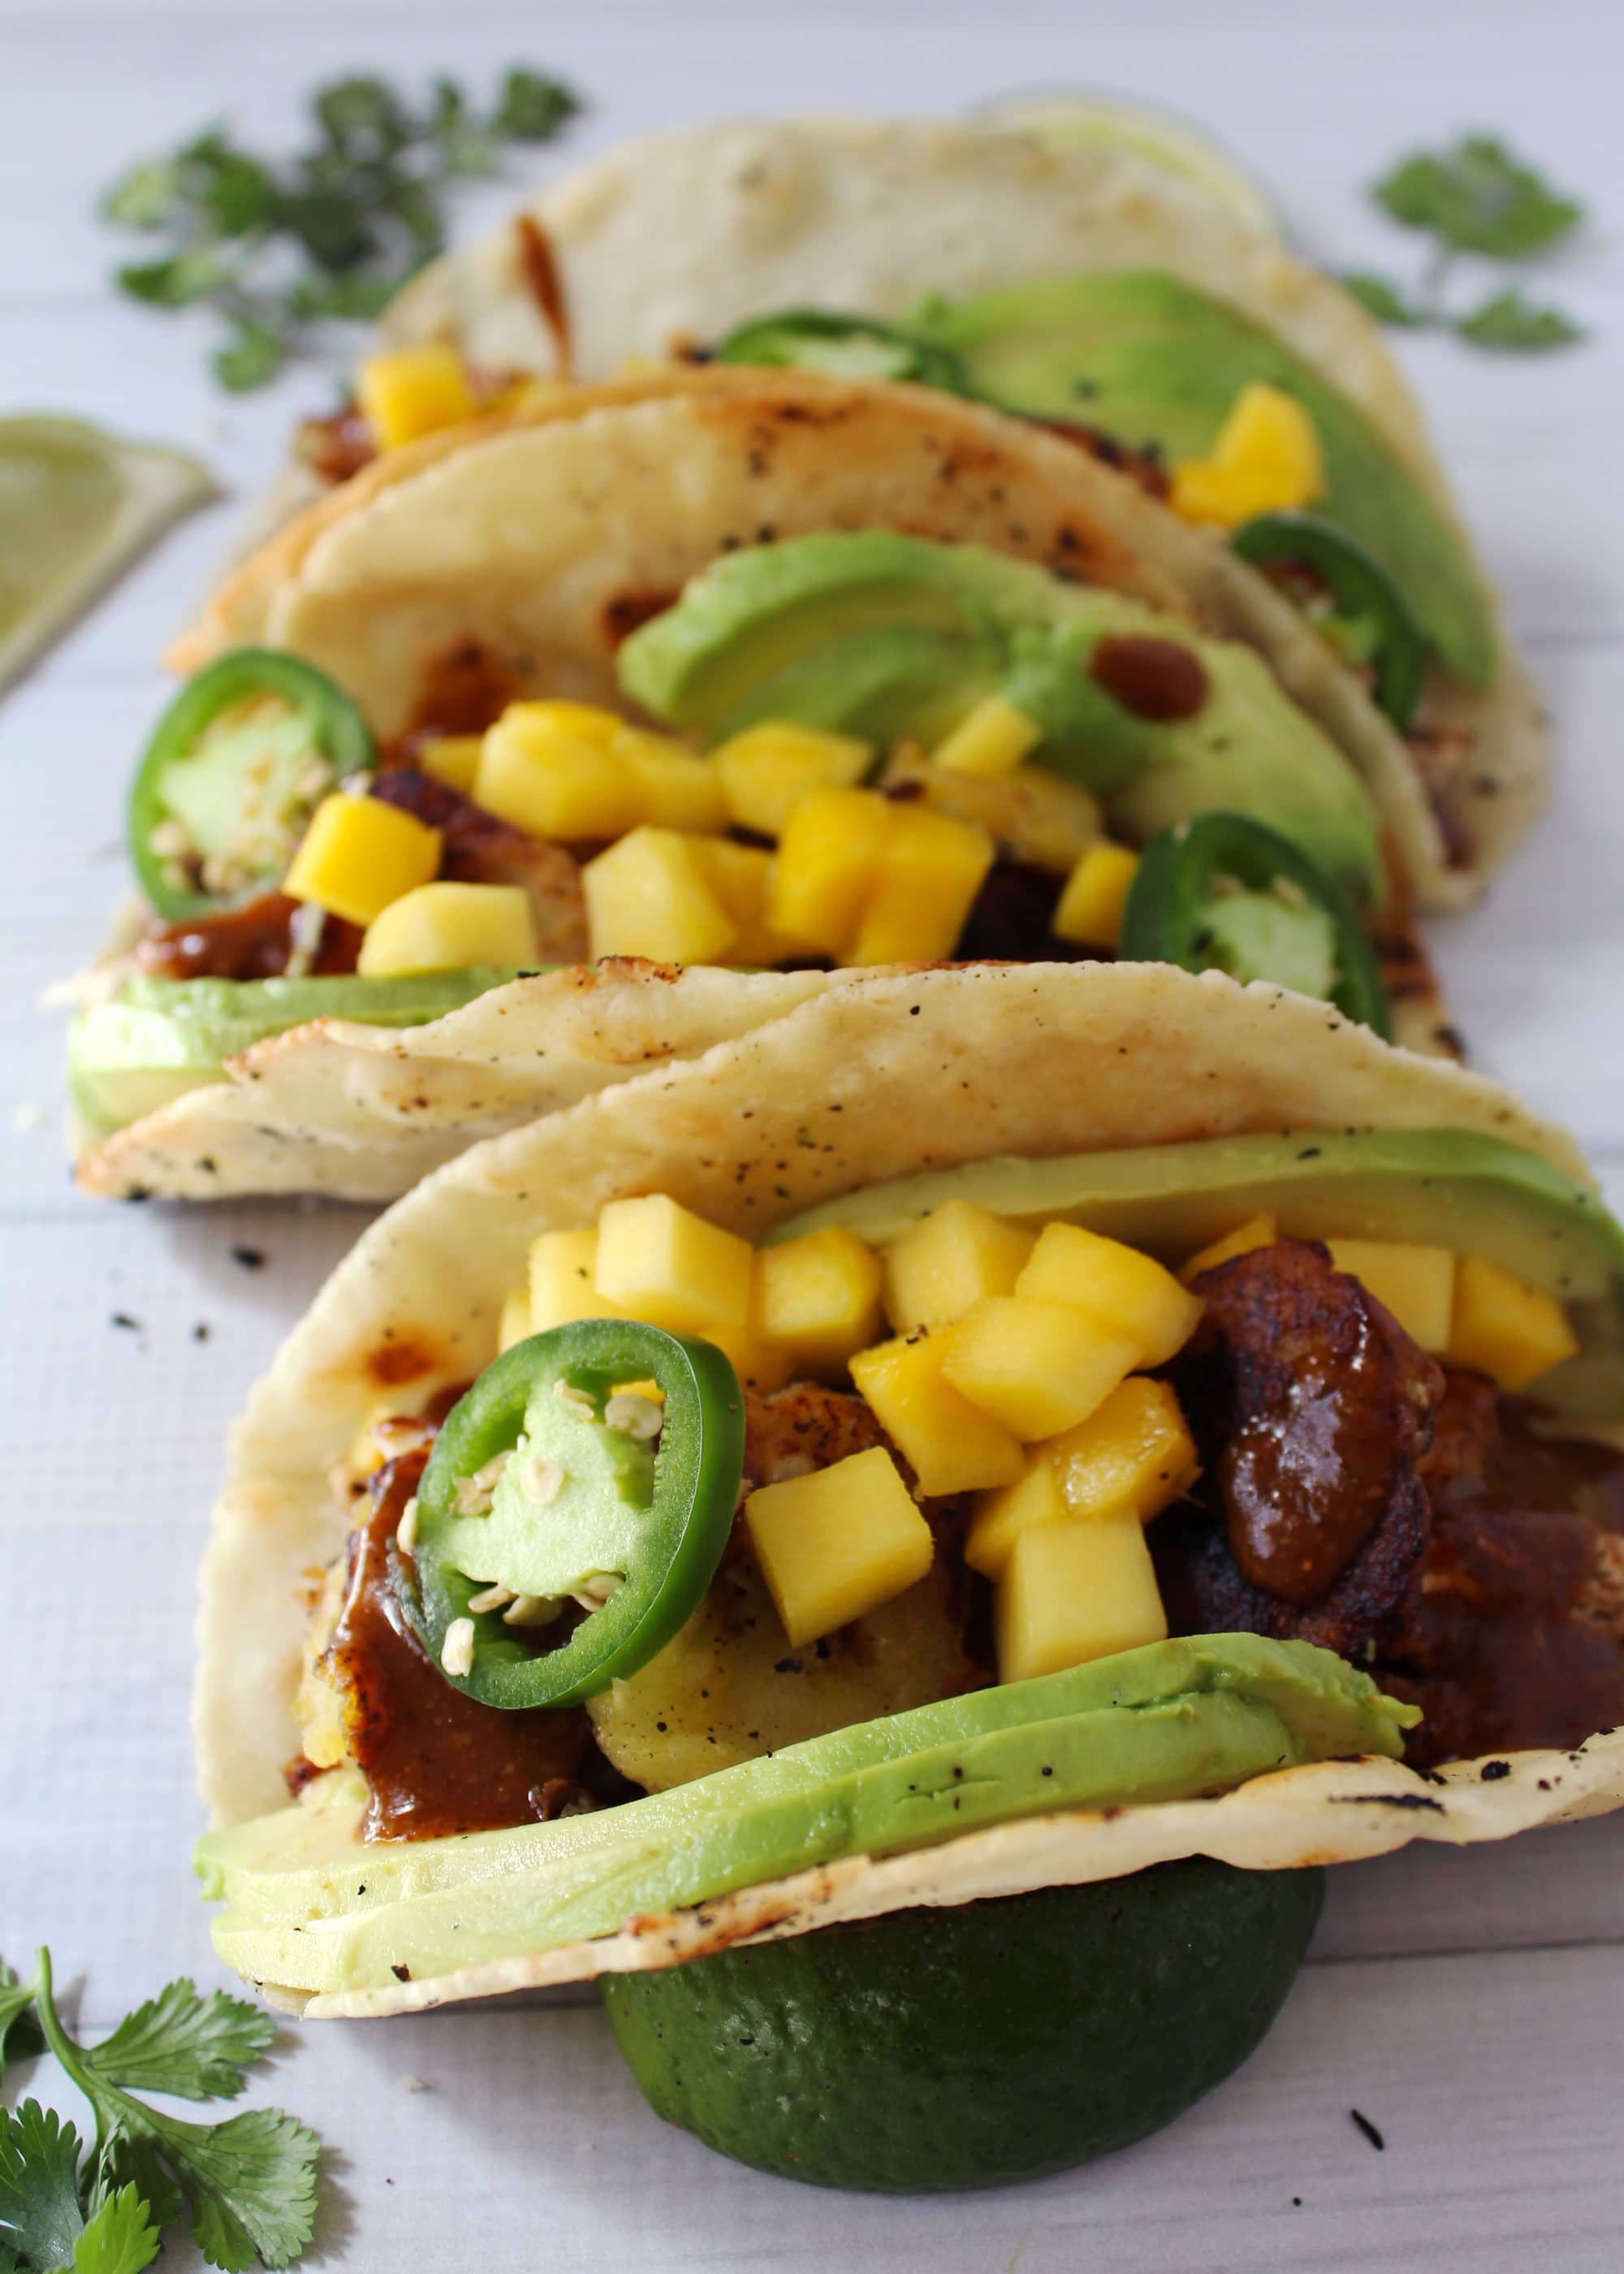 Jamaican jerk chicken tacos loaded with avocado and mango.